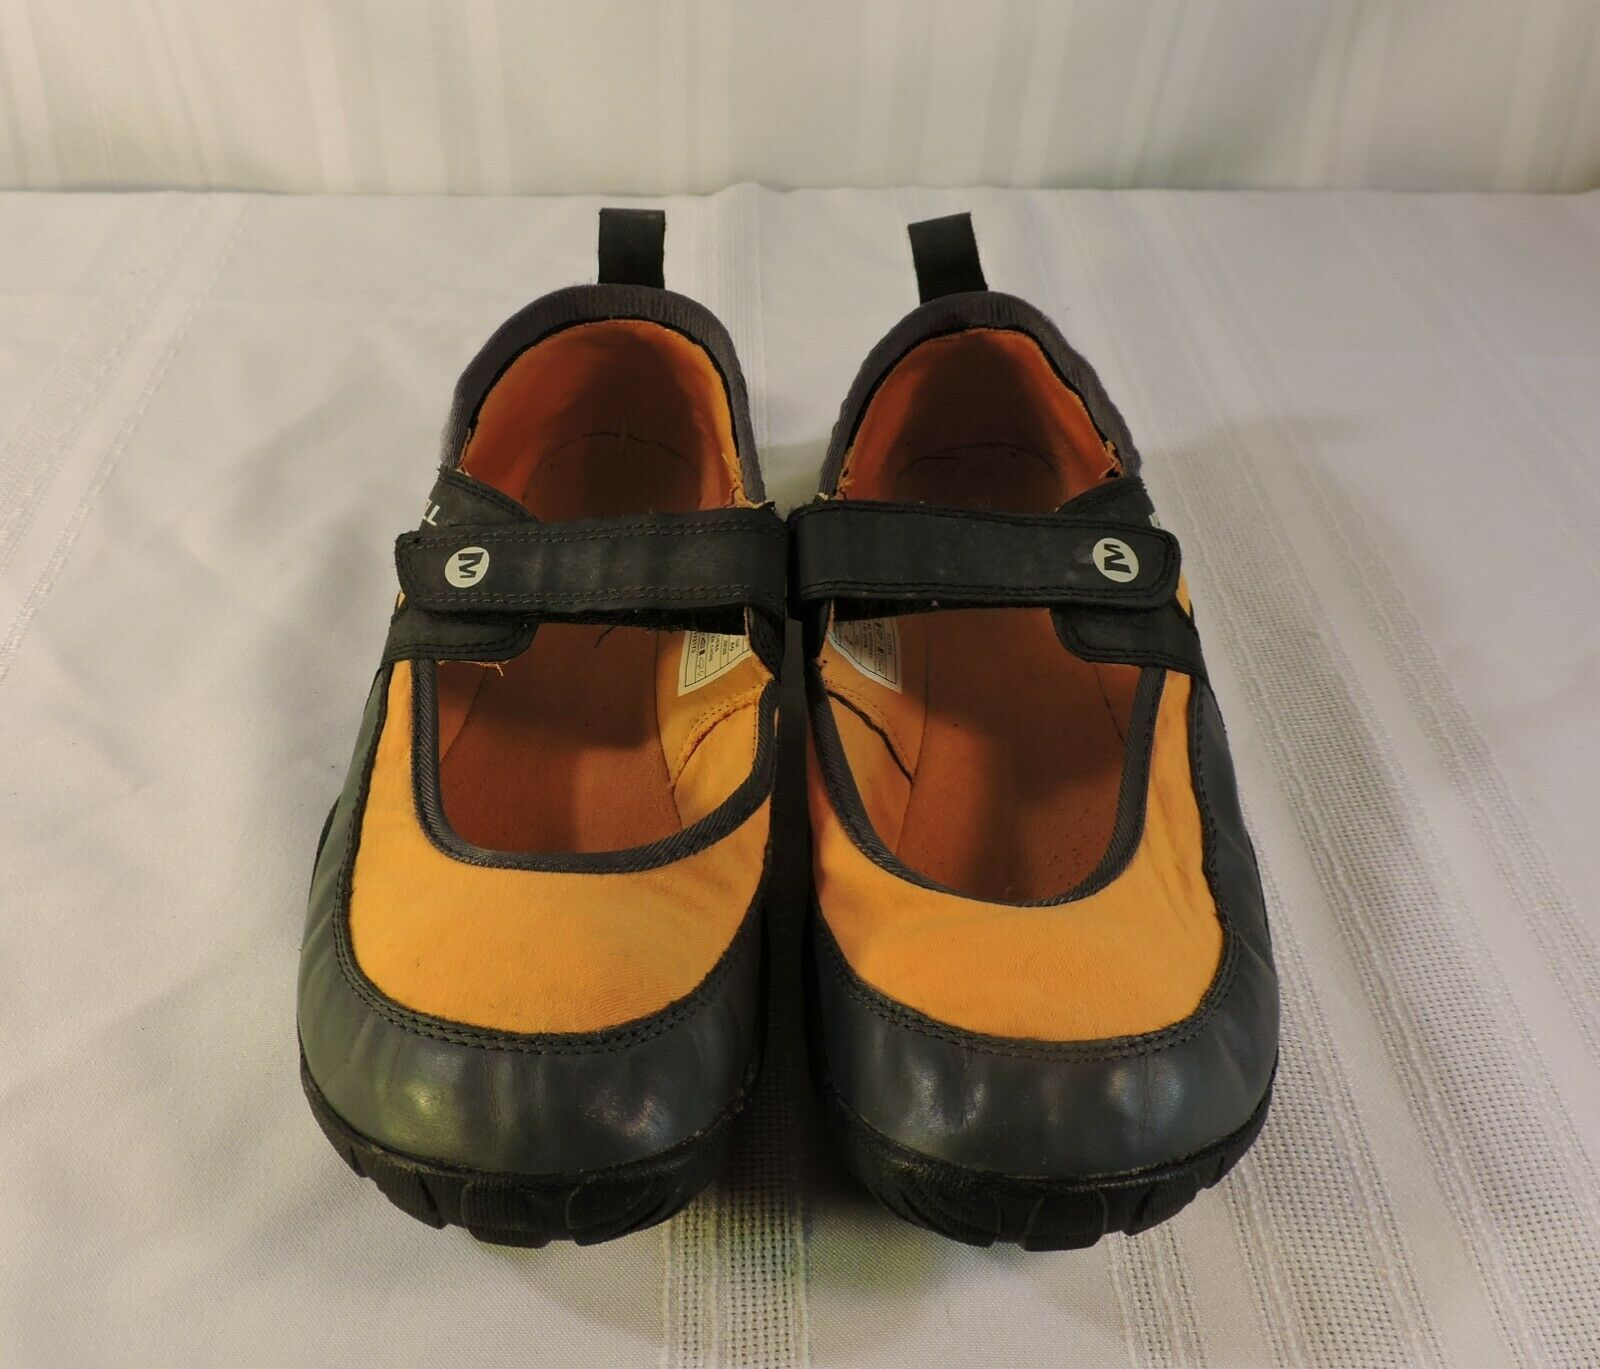 MERRELL Barefoot Pure Glove Training Shoes Women's US Size 9 / EU 40 Orange